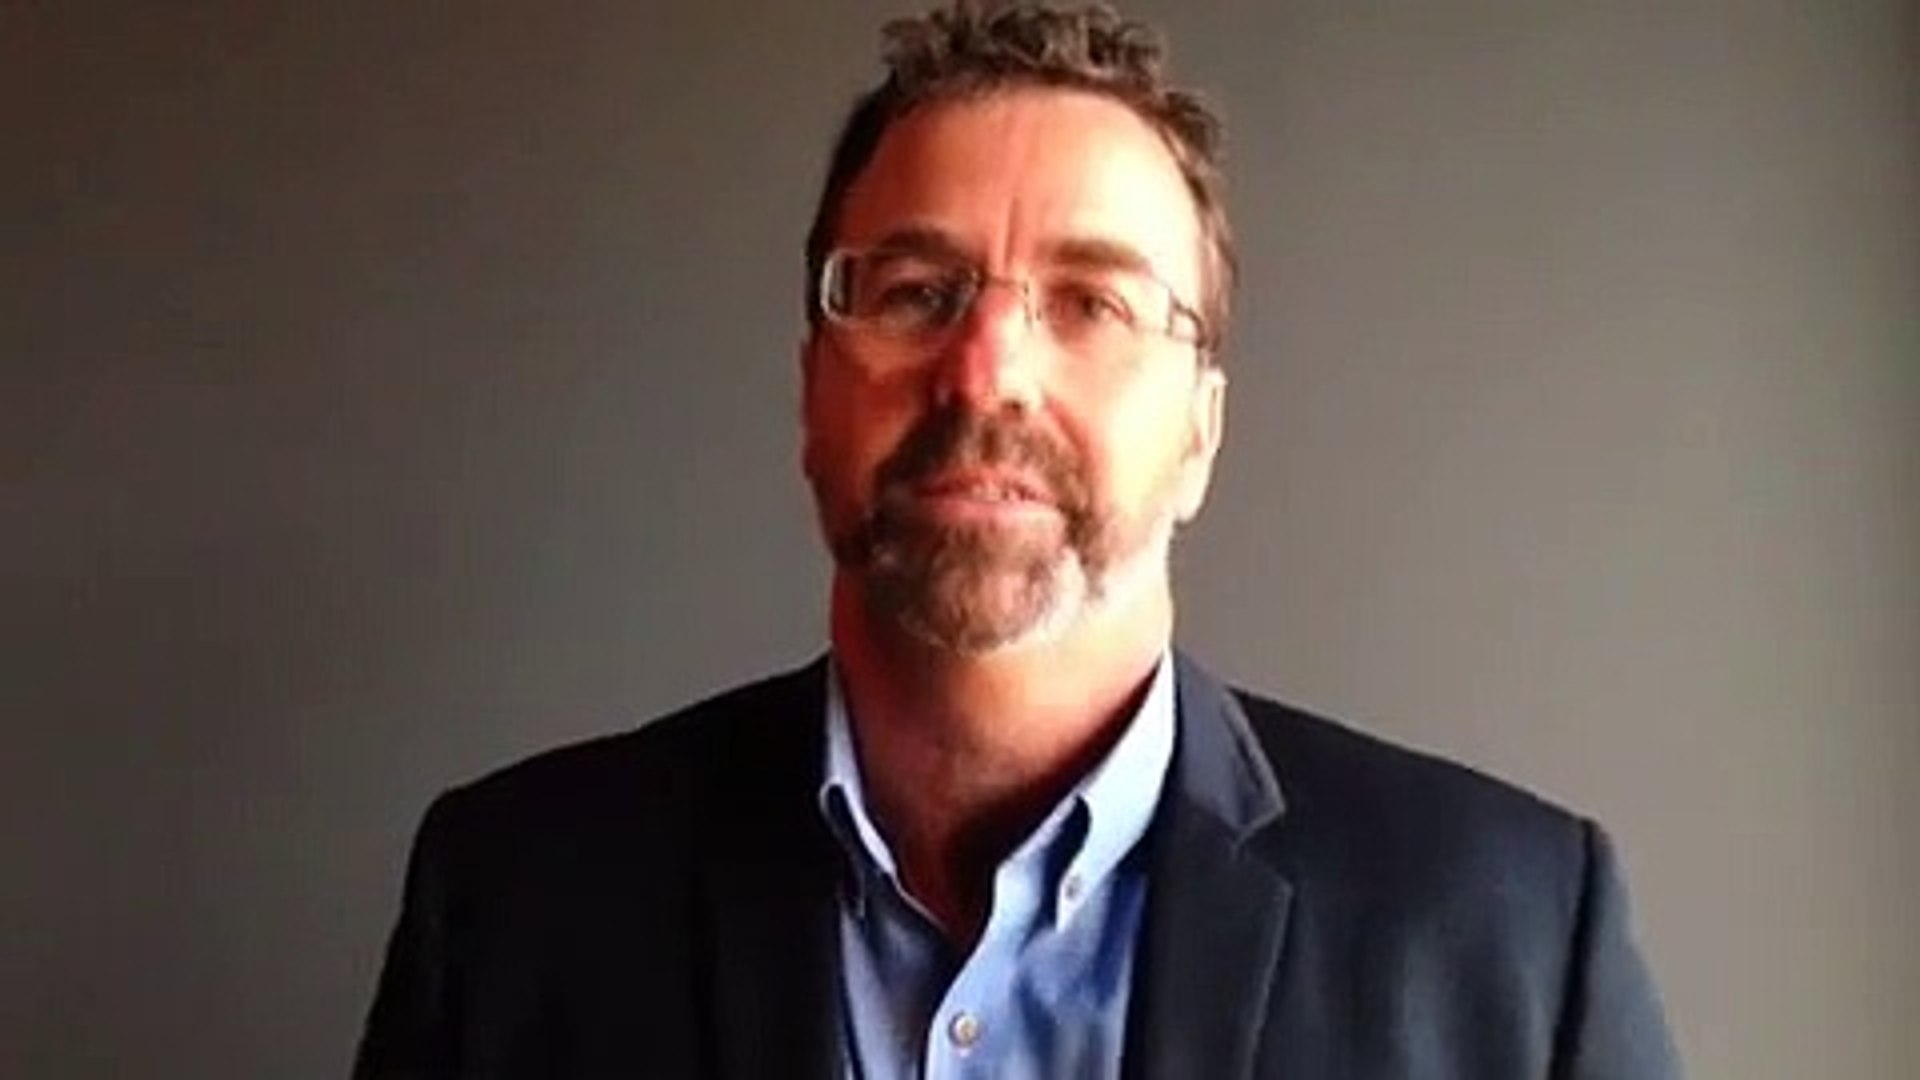 Steve Plummer testimonial - Why Become a Business Consultant